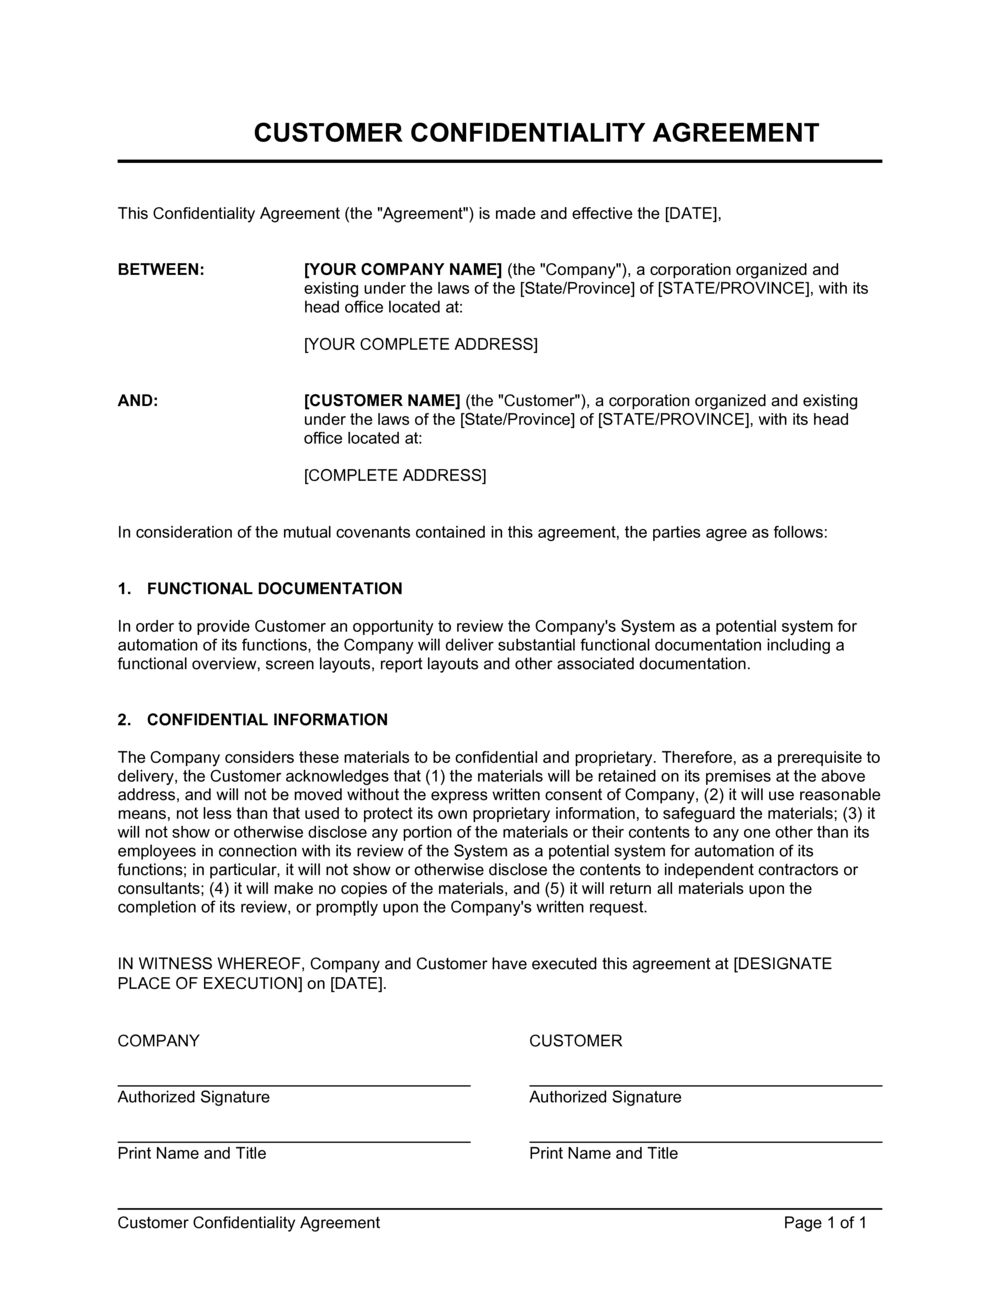 Business-in-a-Box's Customer Confidentiality Agreement Template